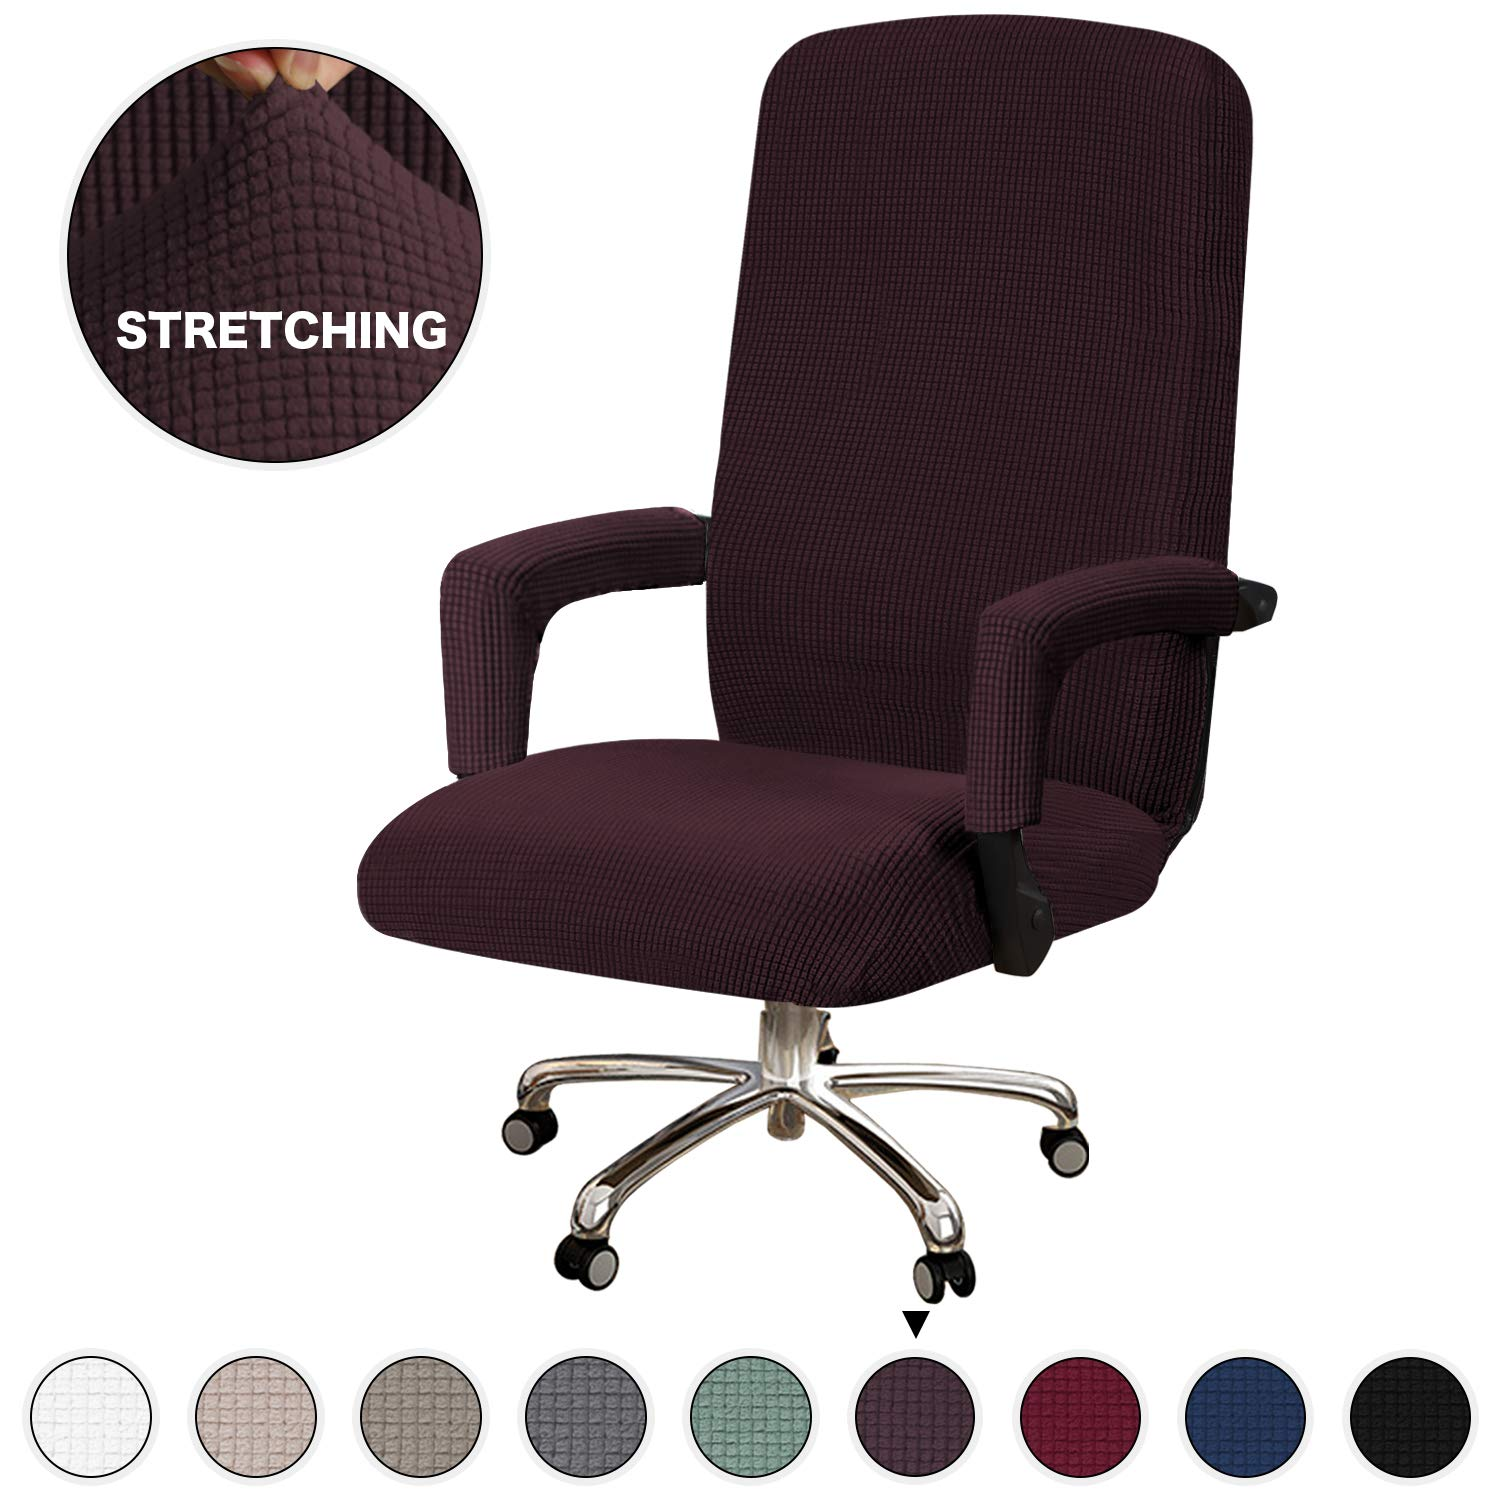 Turquoize Large Office Chair Slipcover for Computer Chair Cover Stretch Furniture Cover Rotating Chair Cover with Armrest Covers Machine Washable Chair Cover for Office, Only Cover, Large, Brown